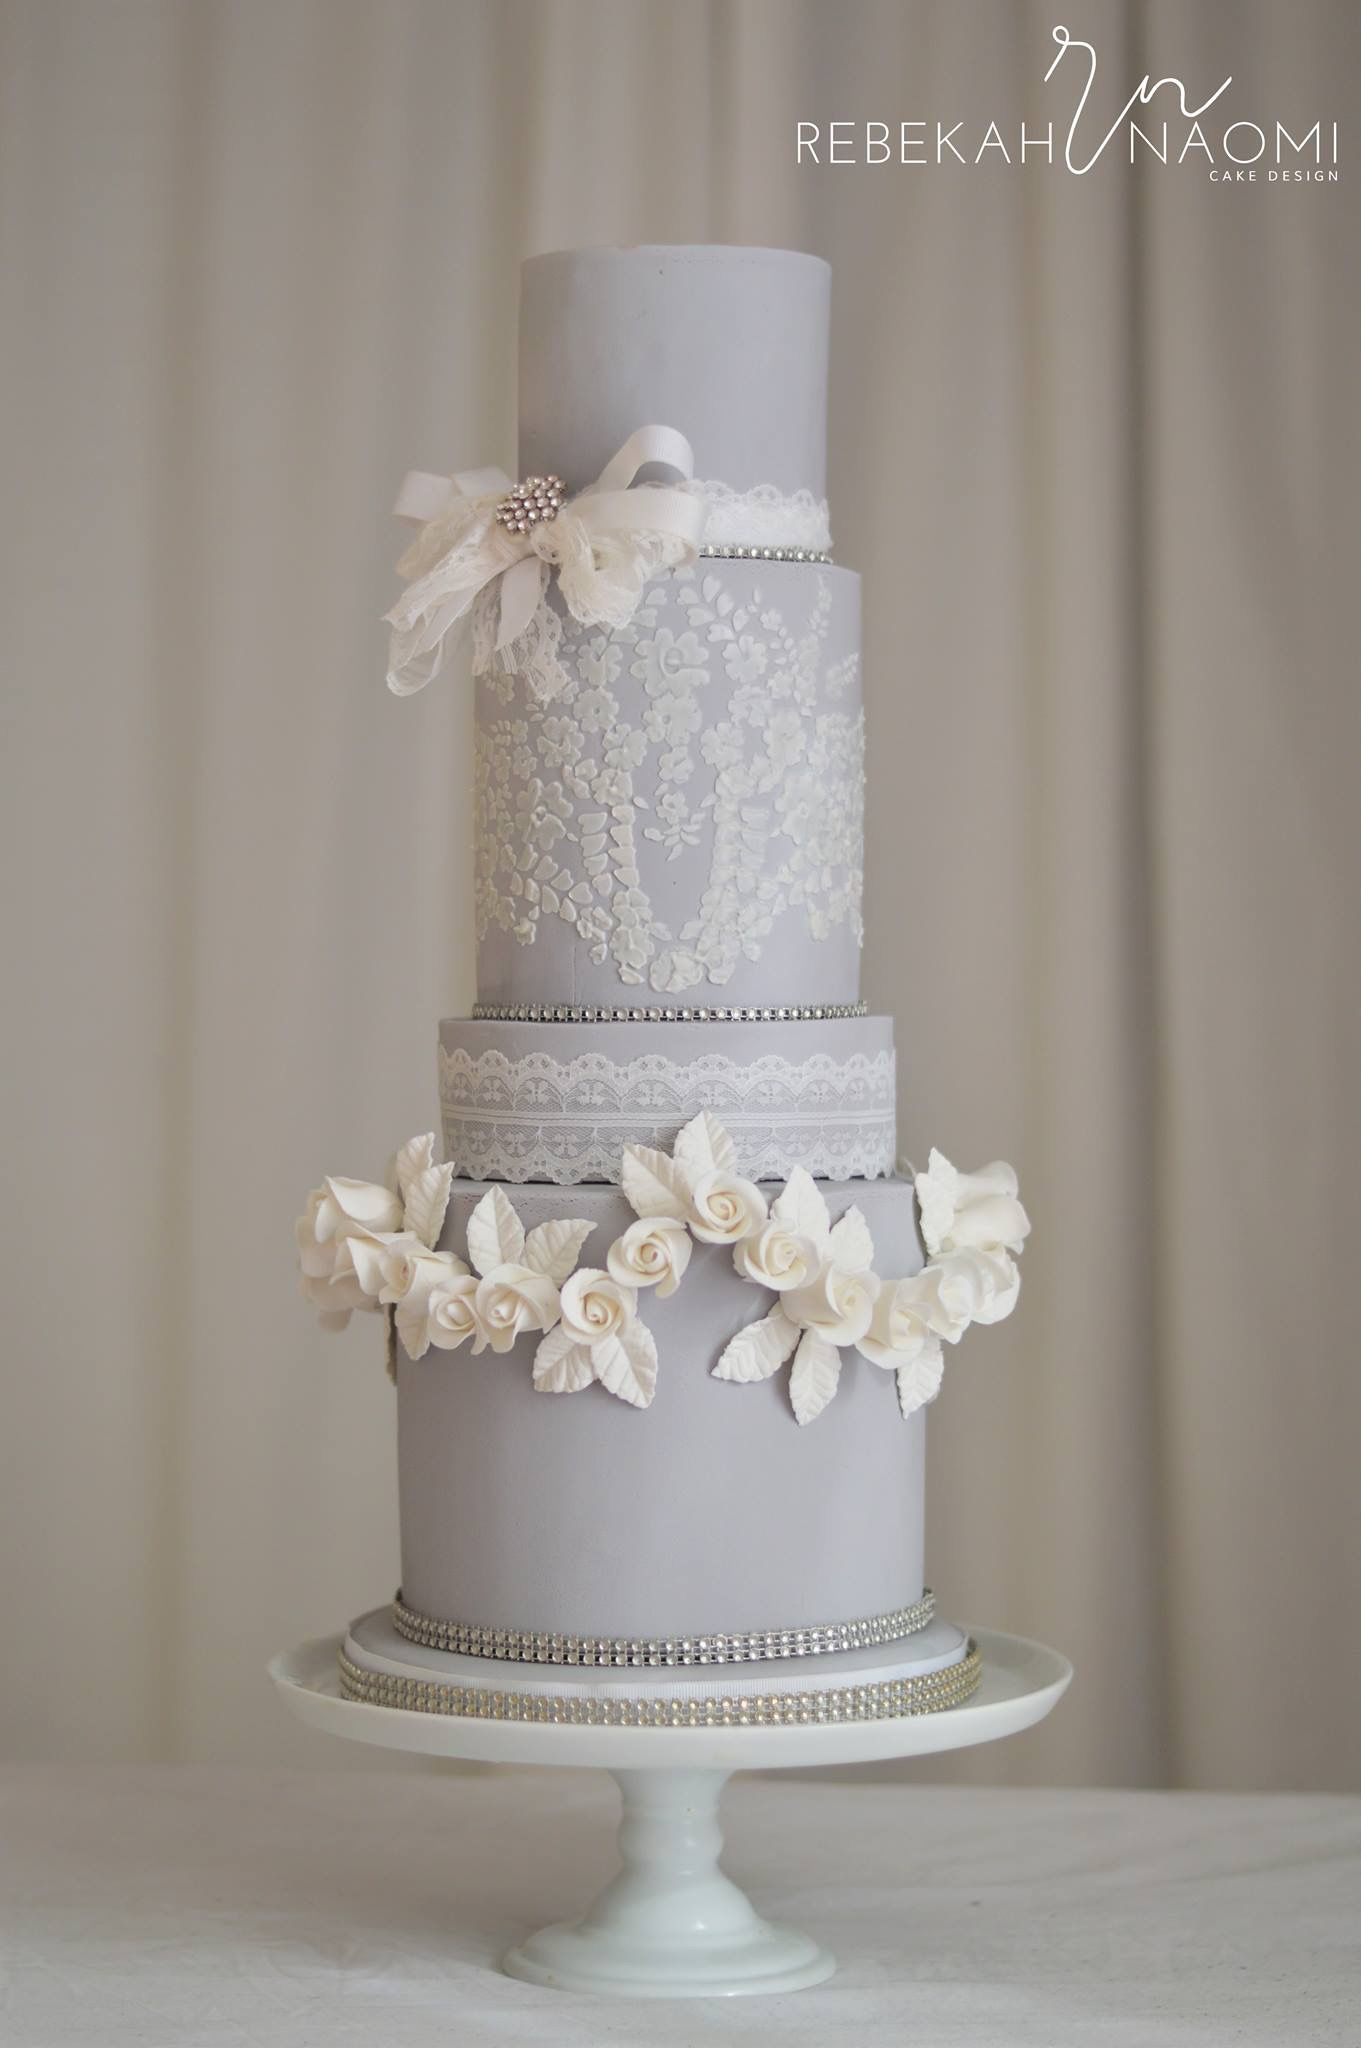 Wedding cakesoft dove grey with romantic rose swag border cakes